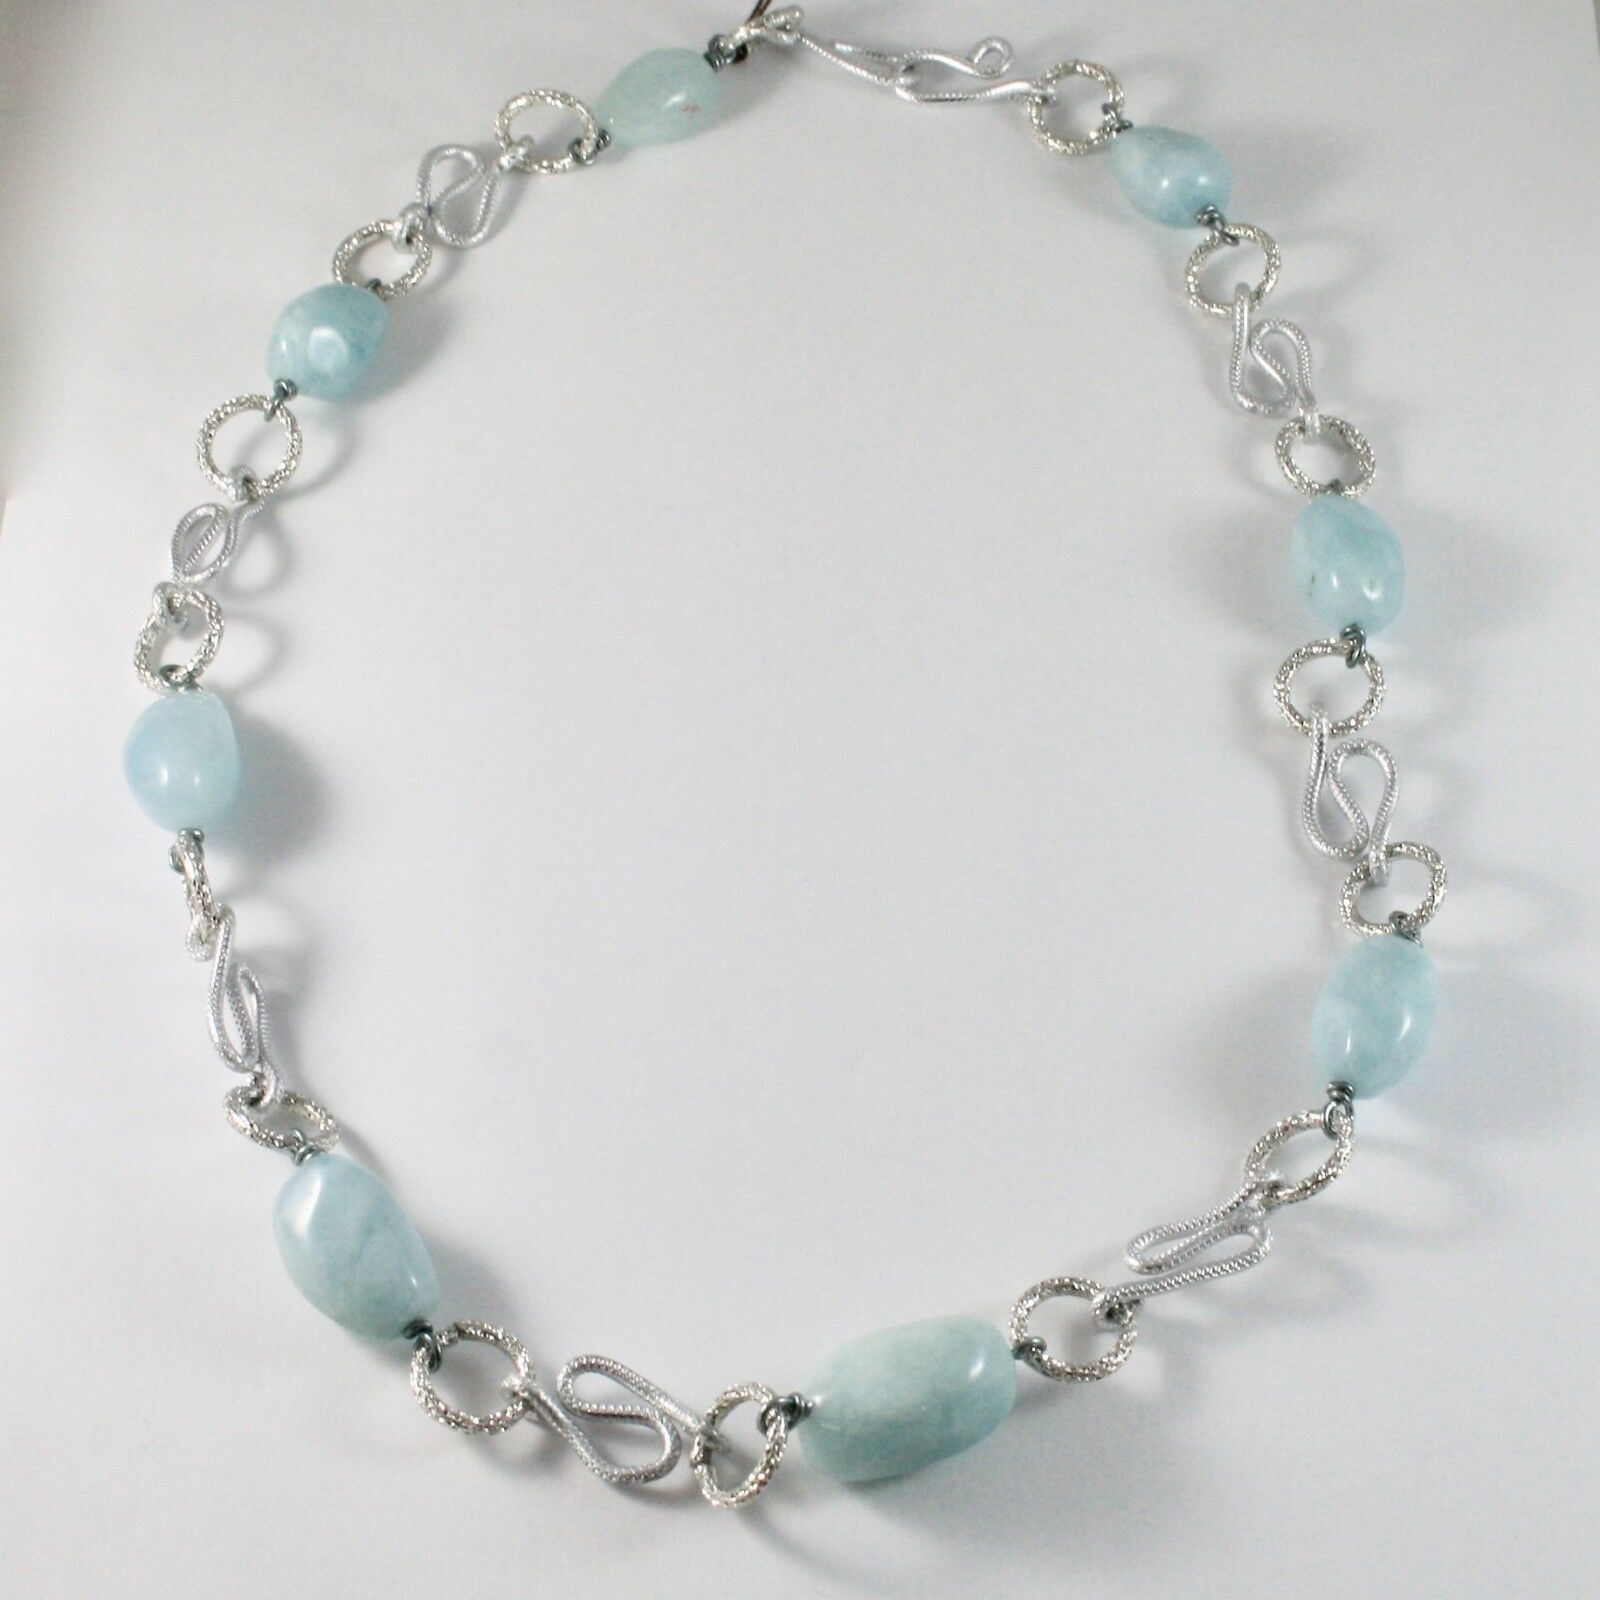 Necklace the Aluminium Long 60 Inch with Aquamarine Blue Blue